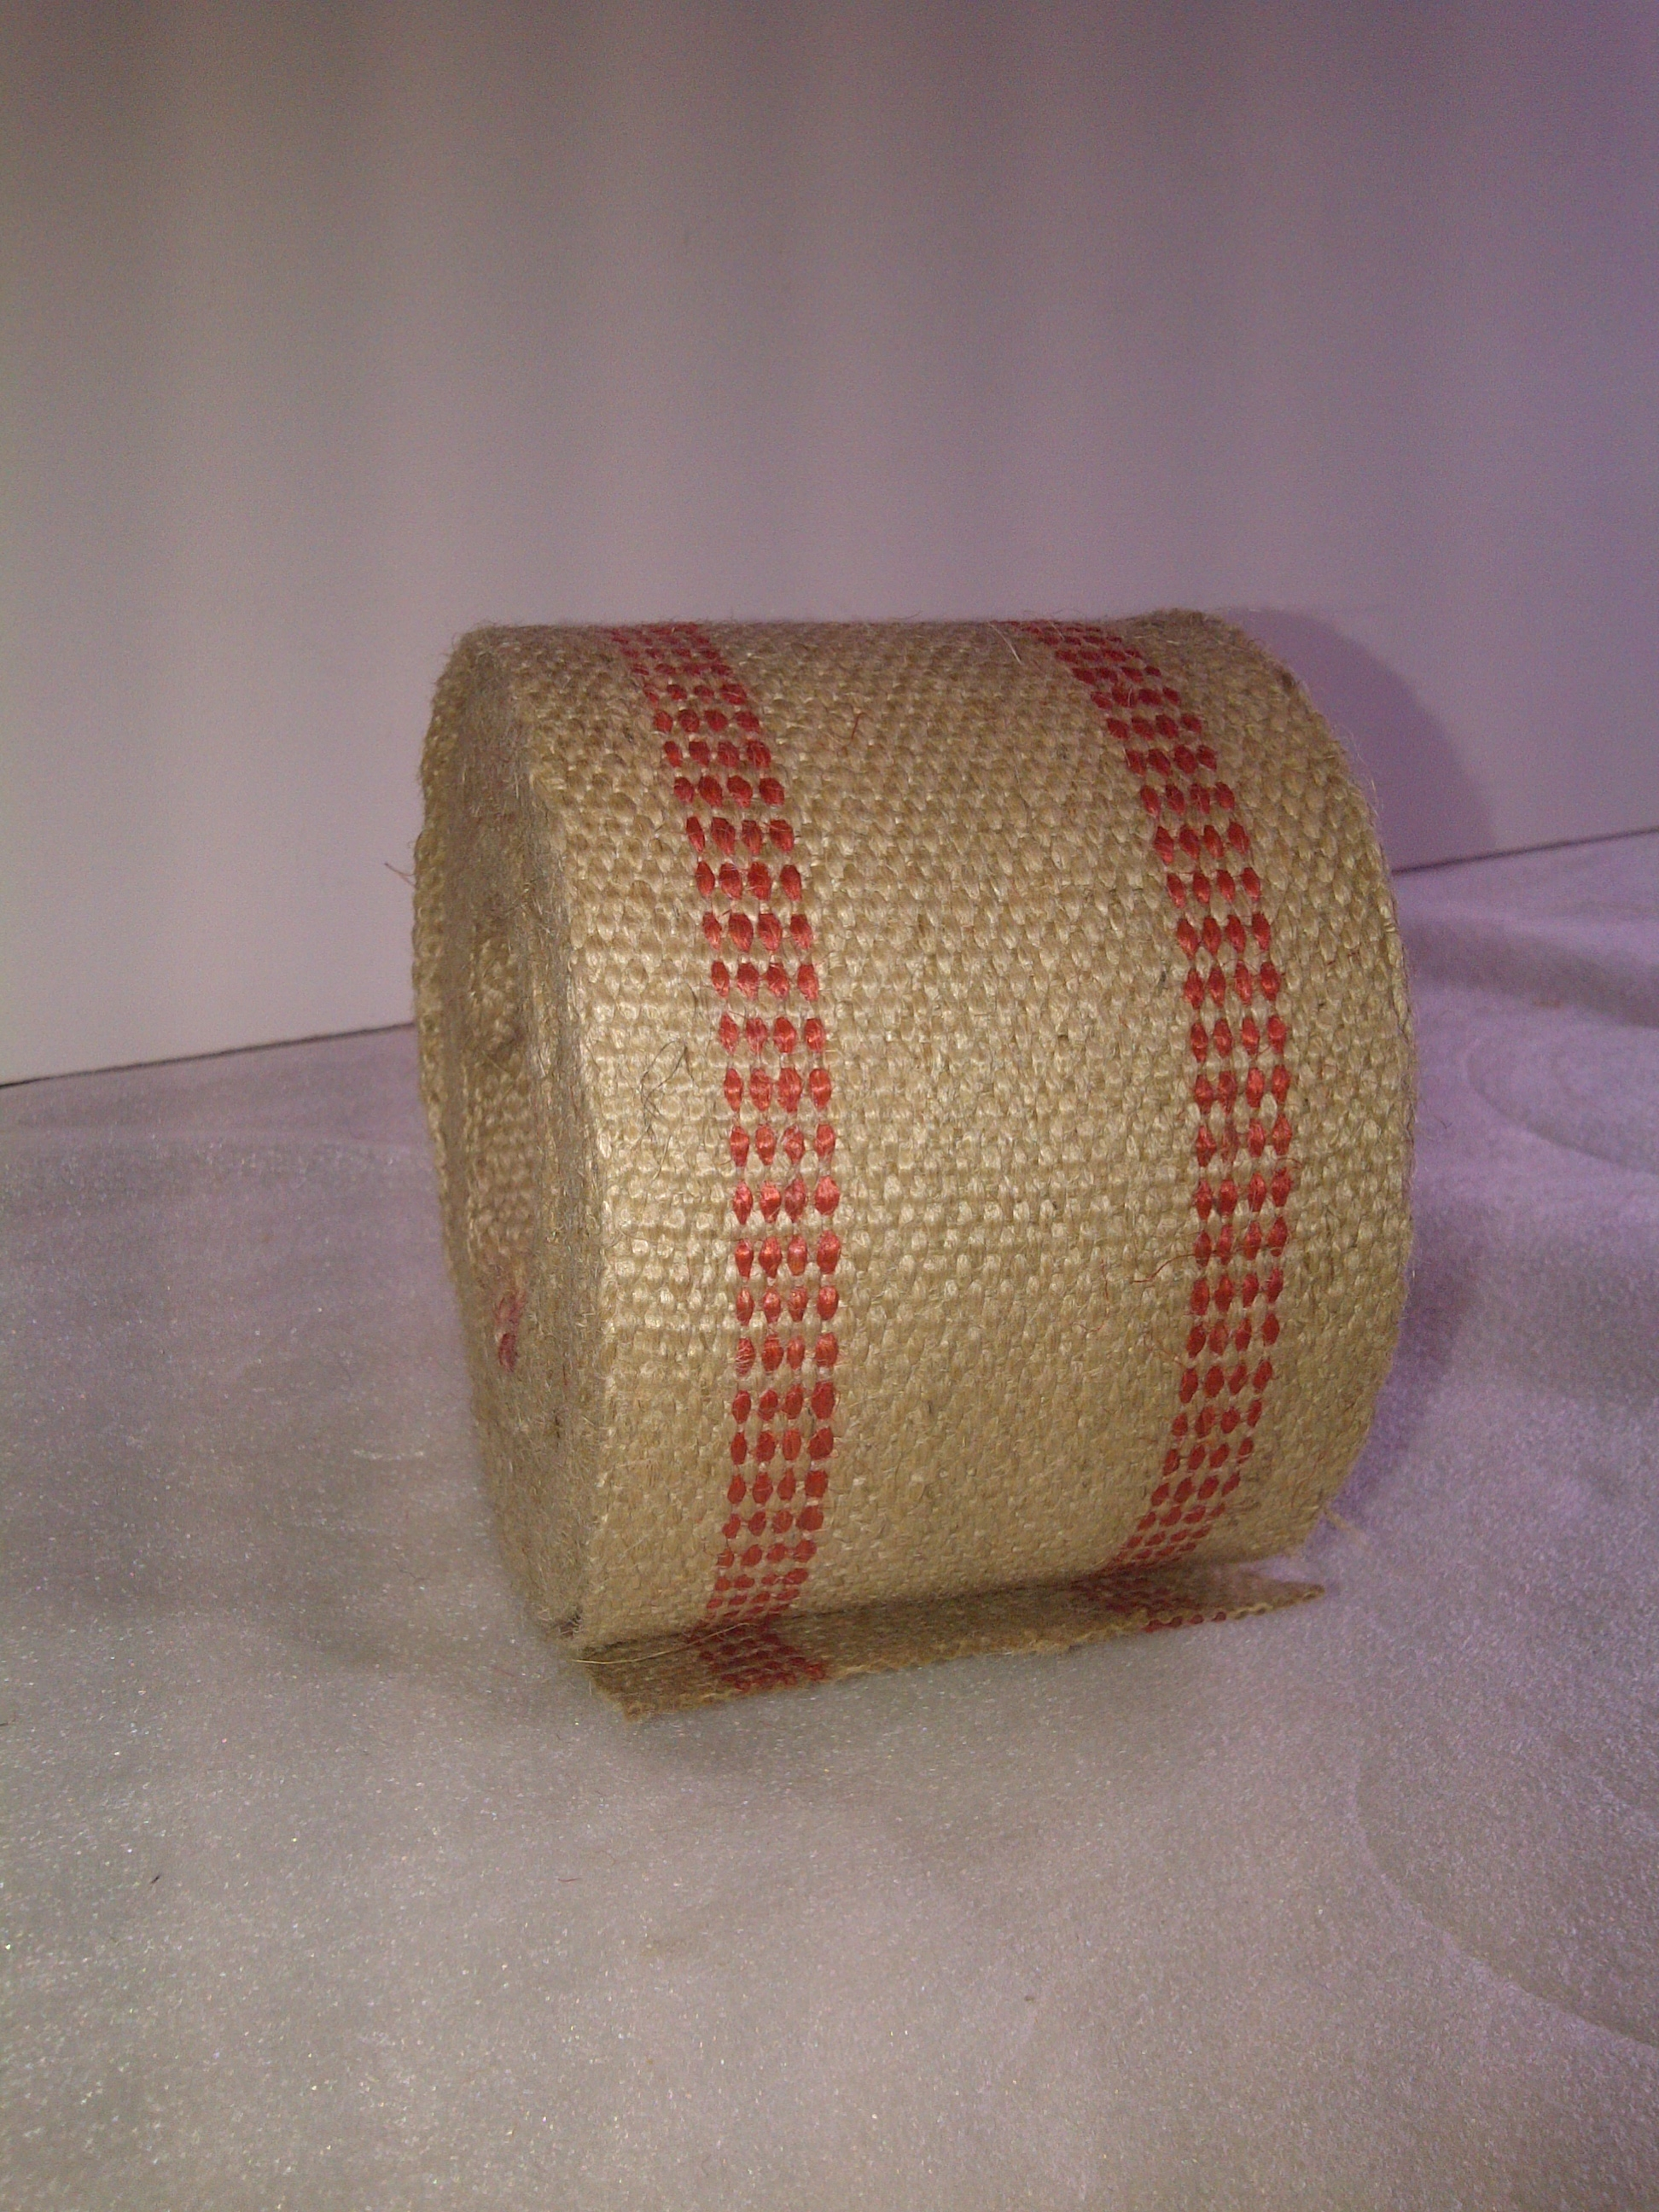 10 Yards of Red Burlap Webbing